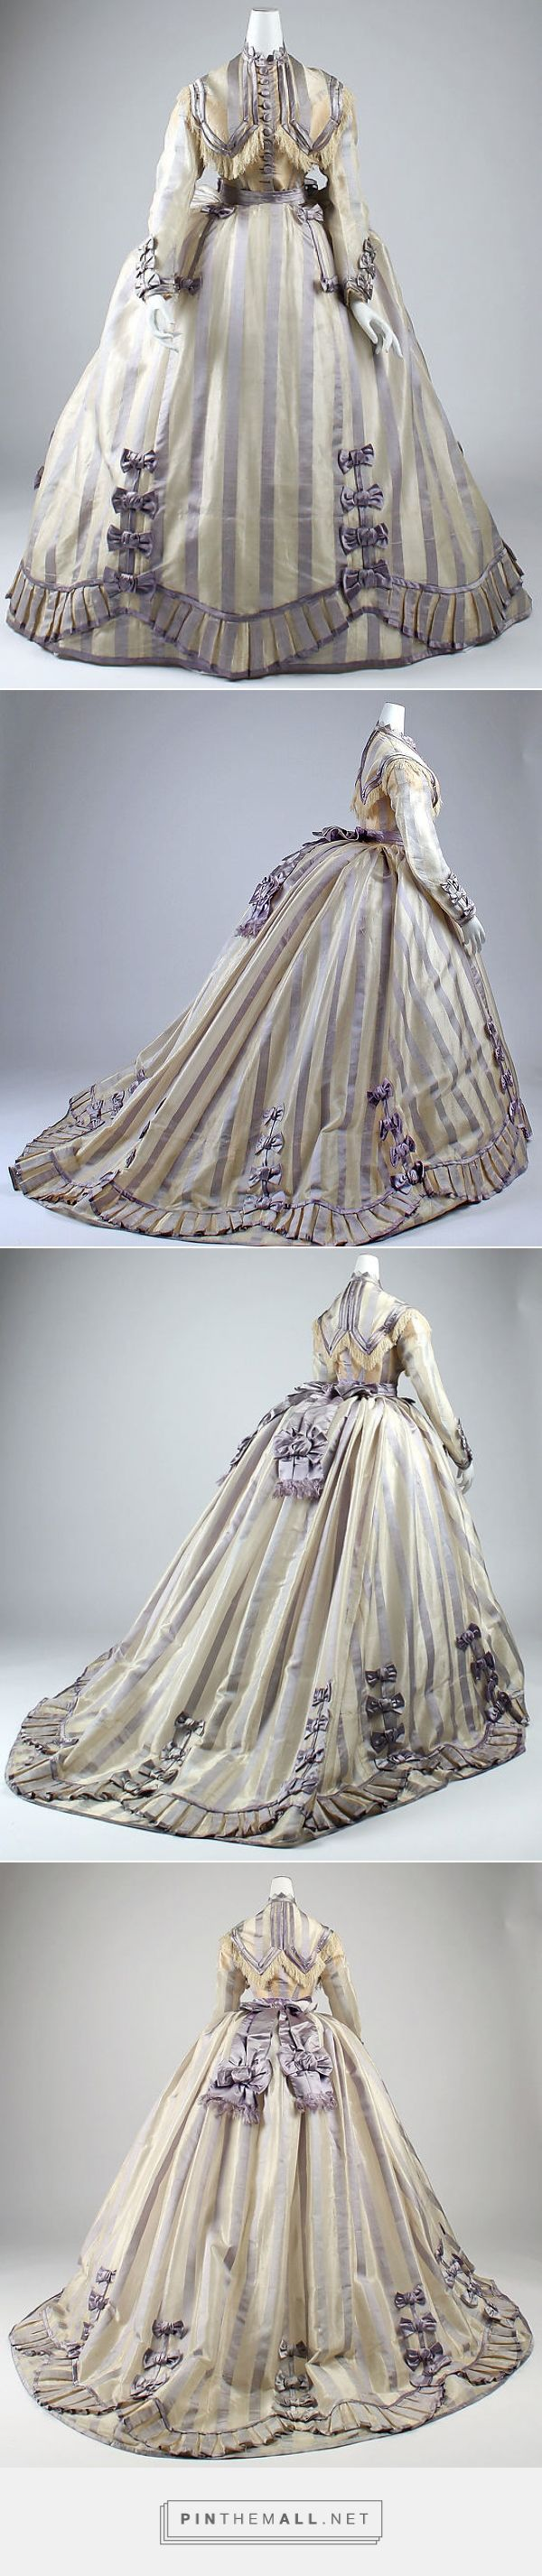 Dress by Depret 1867-69 French | The Metropolitan Museum of Art - created via https://pinthemall.net